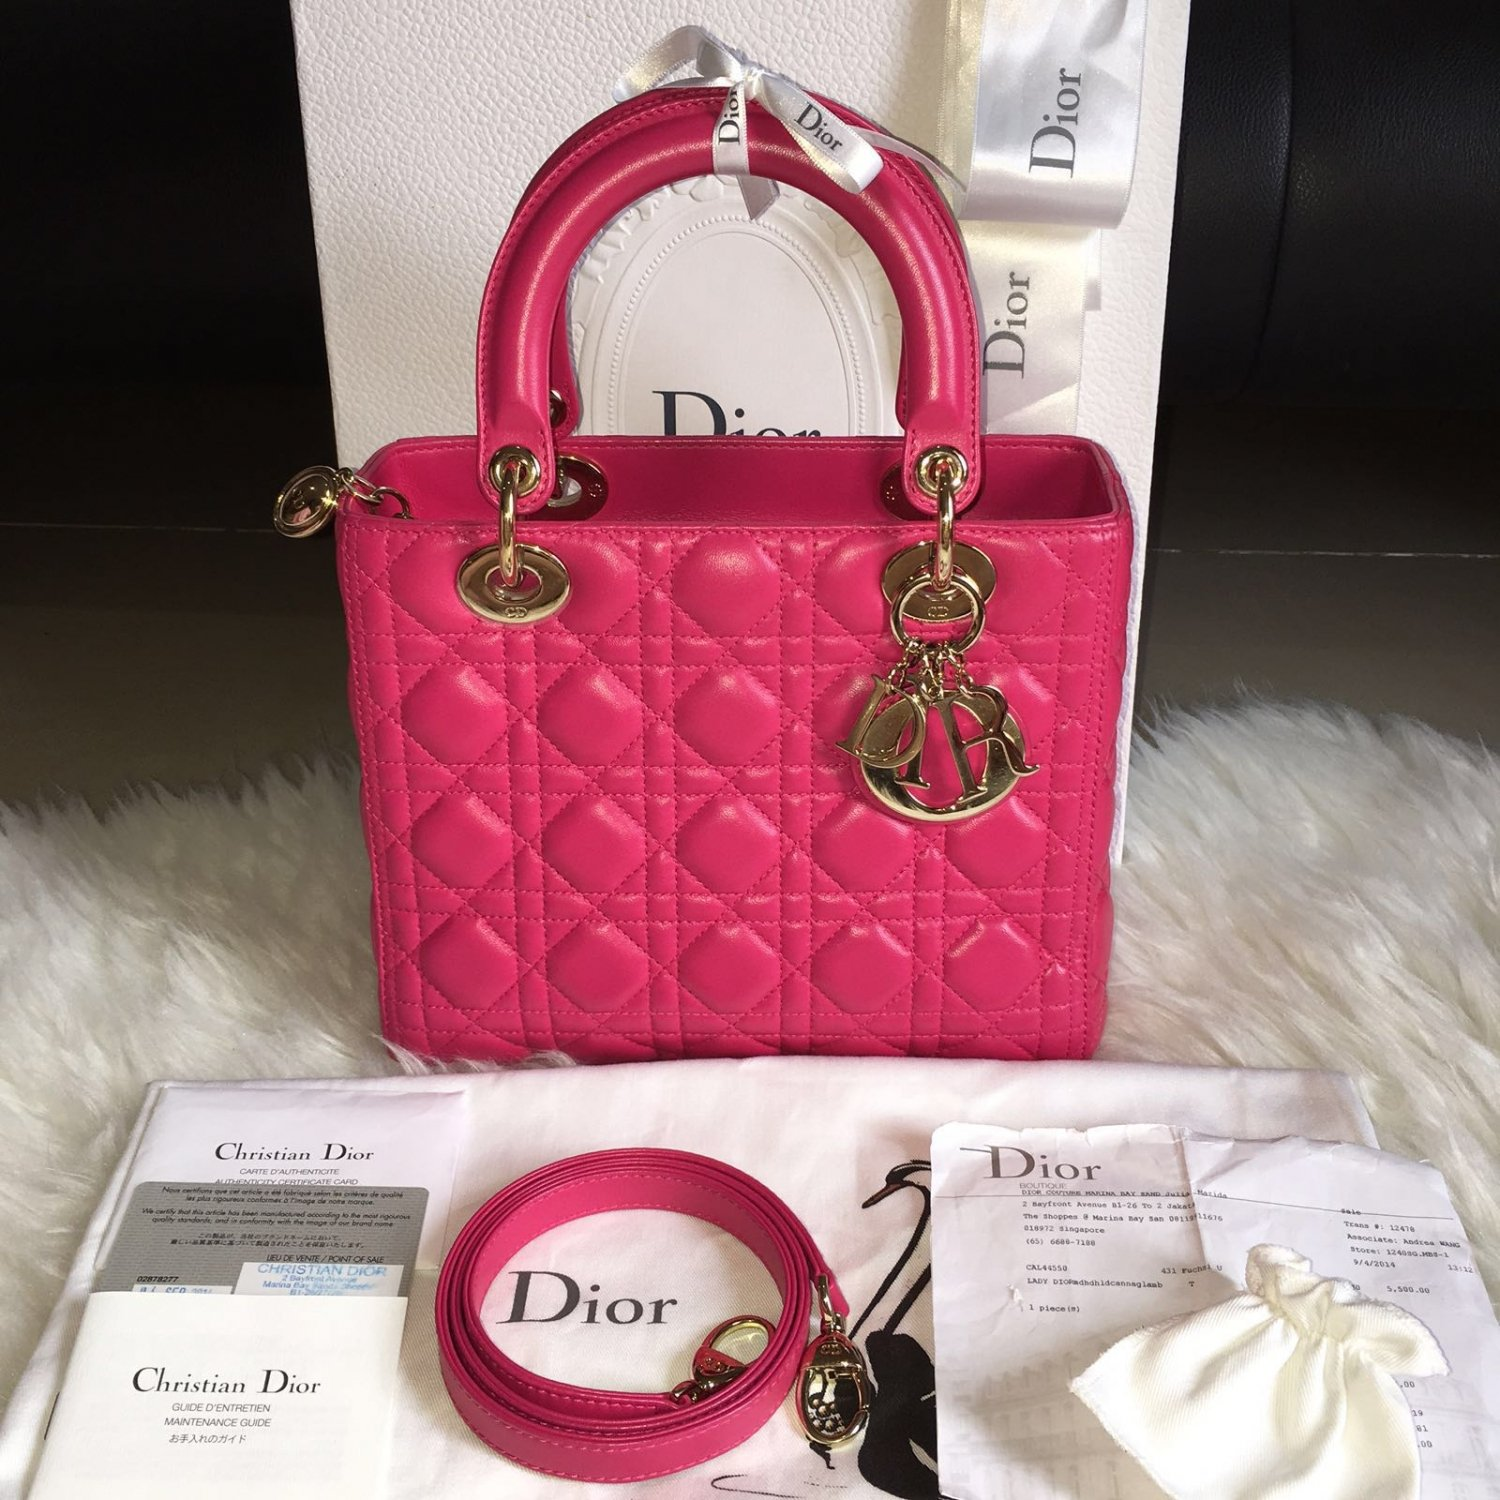 5f82ae0ed972 Dior Bags New Prices – Bragmybag